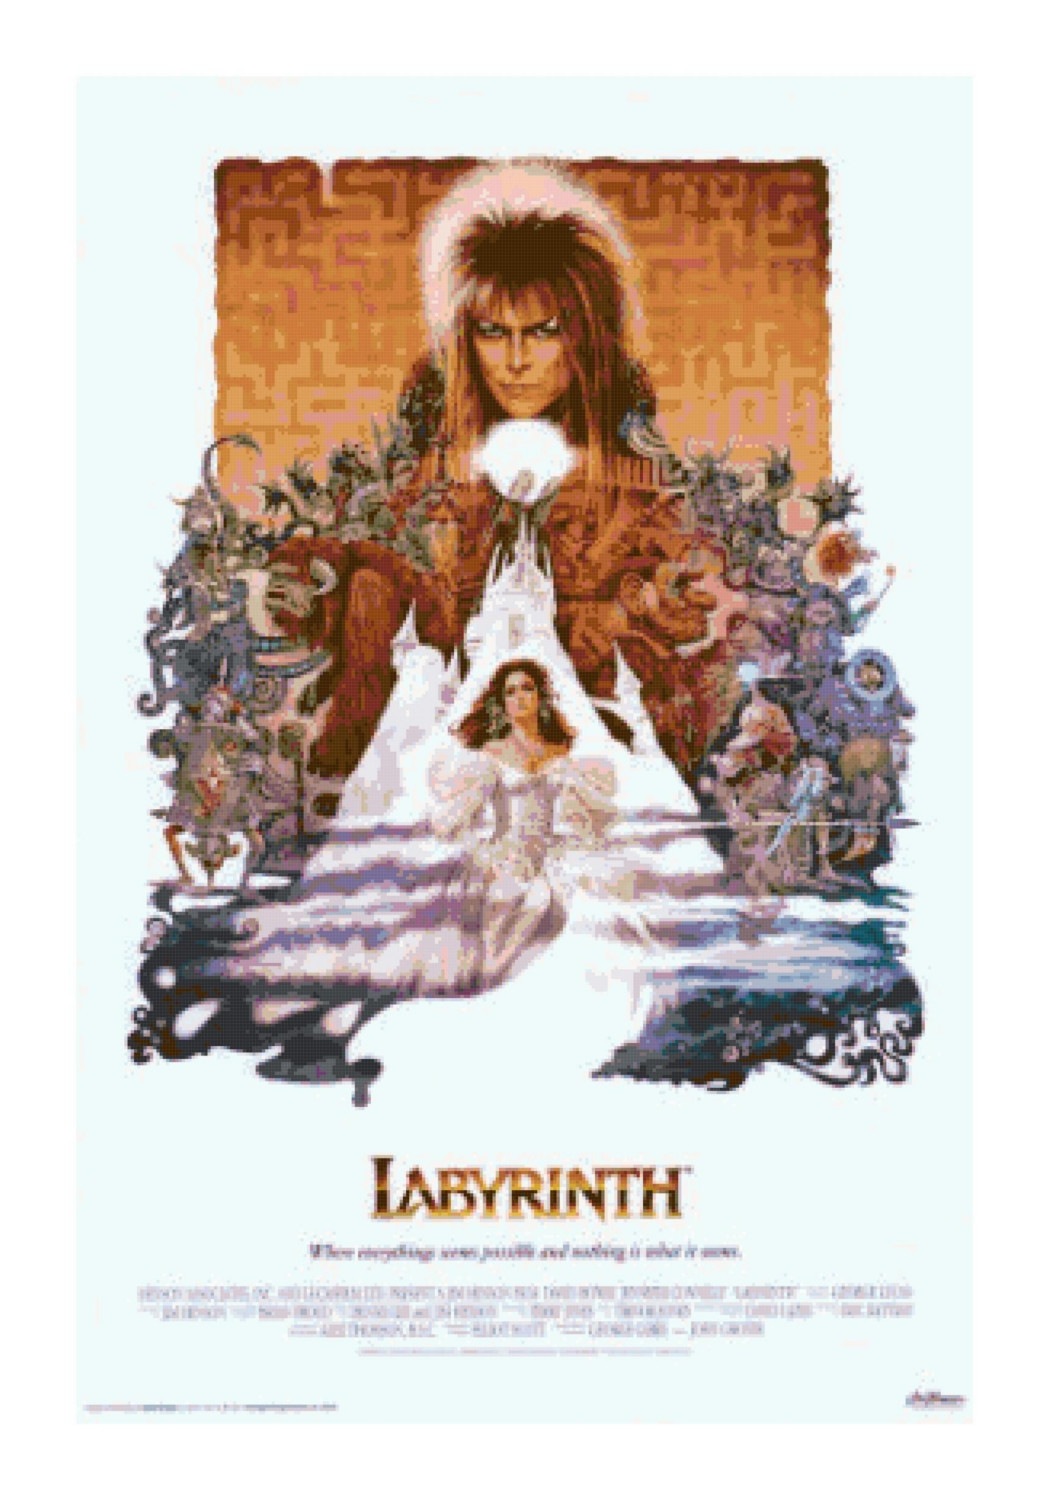 POPSICULTURE: 80s Movies: Labyrinth (1986) Labyrinth 1986 Poster